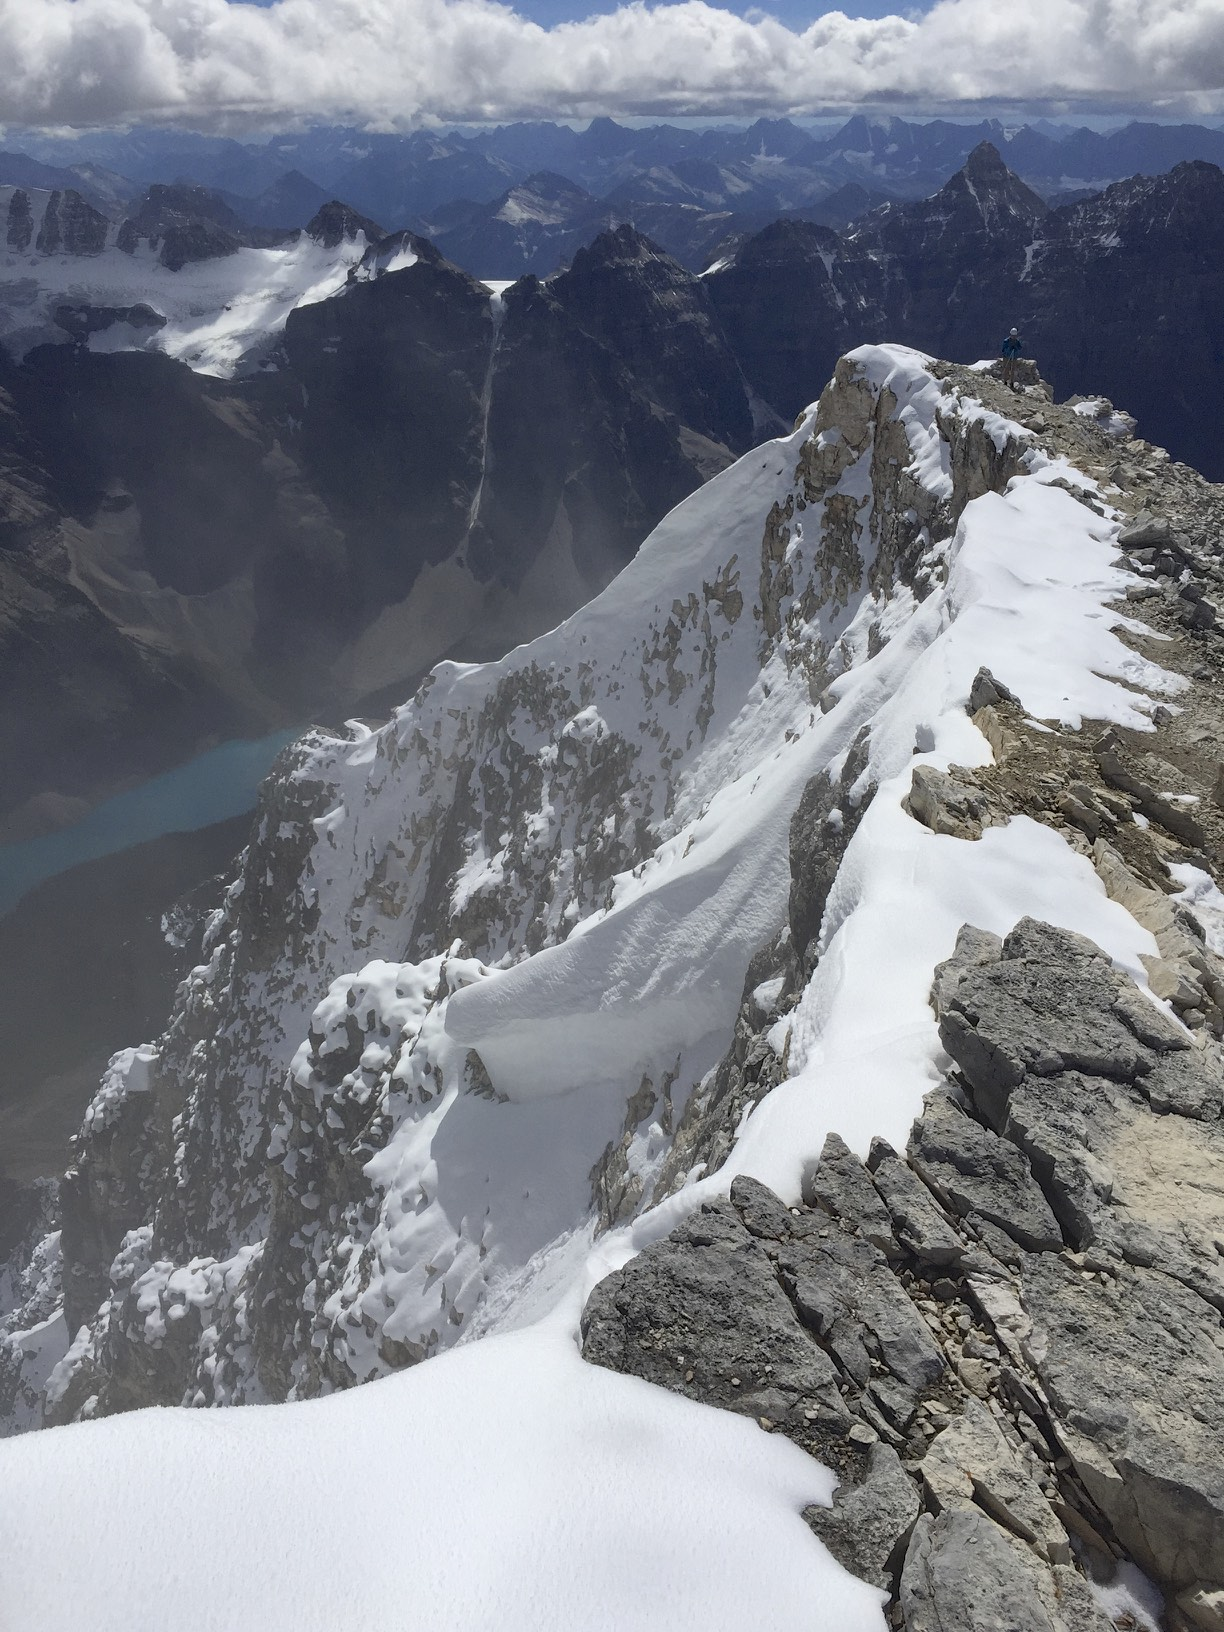 The summit ridge of Mt. Temple with Lake Moraine below